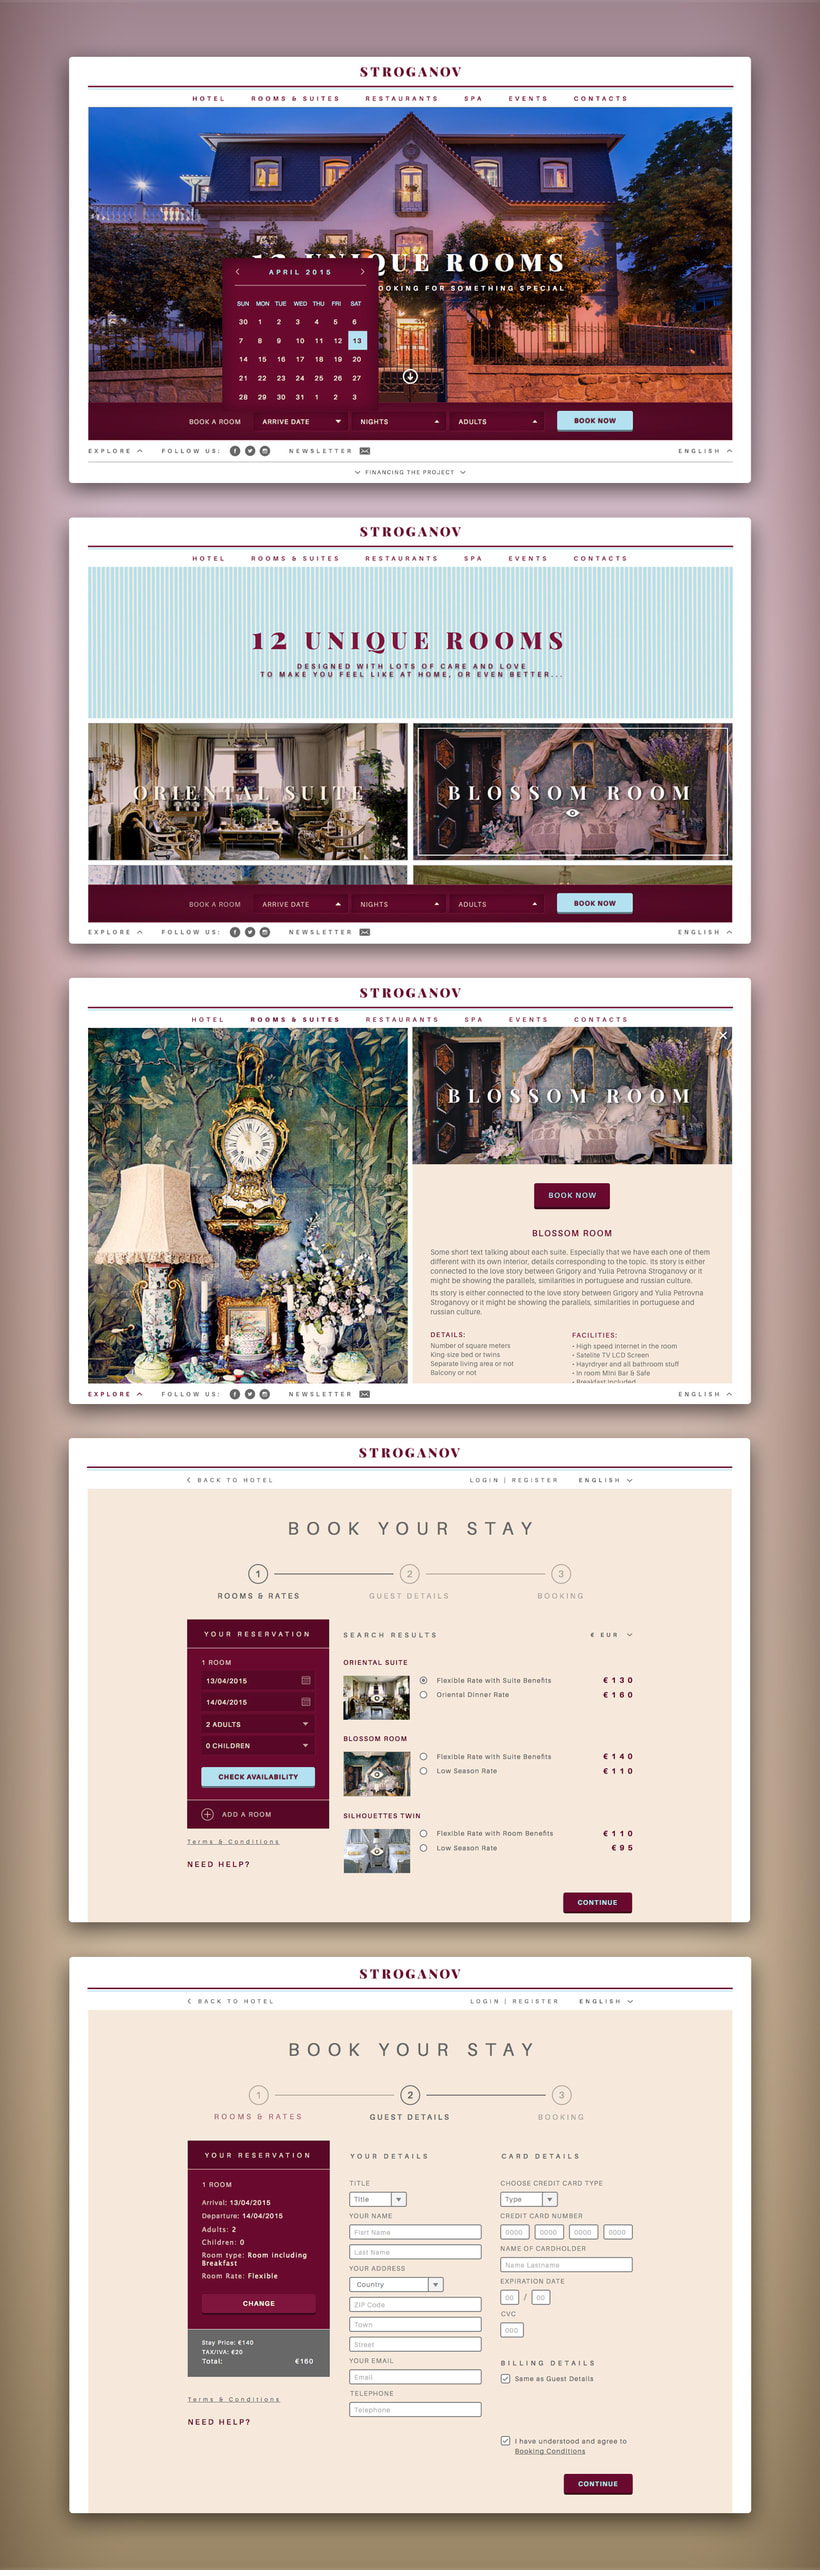 Stroganov Hotel - Website 2